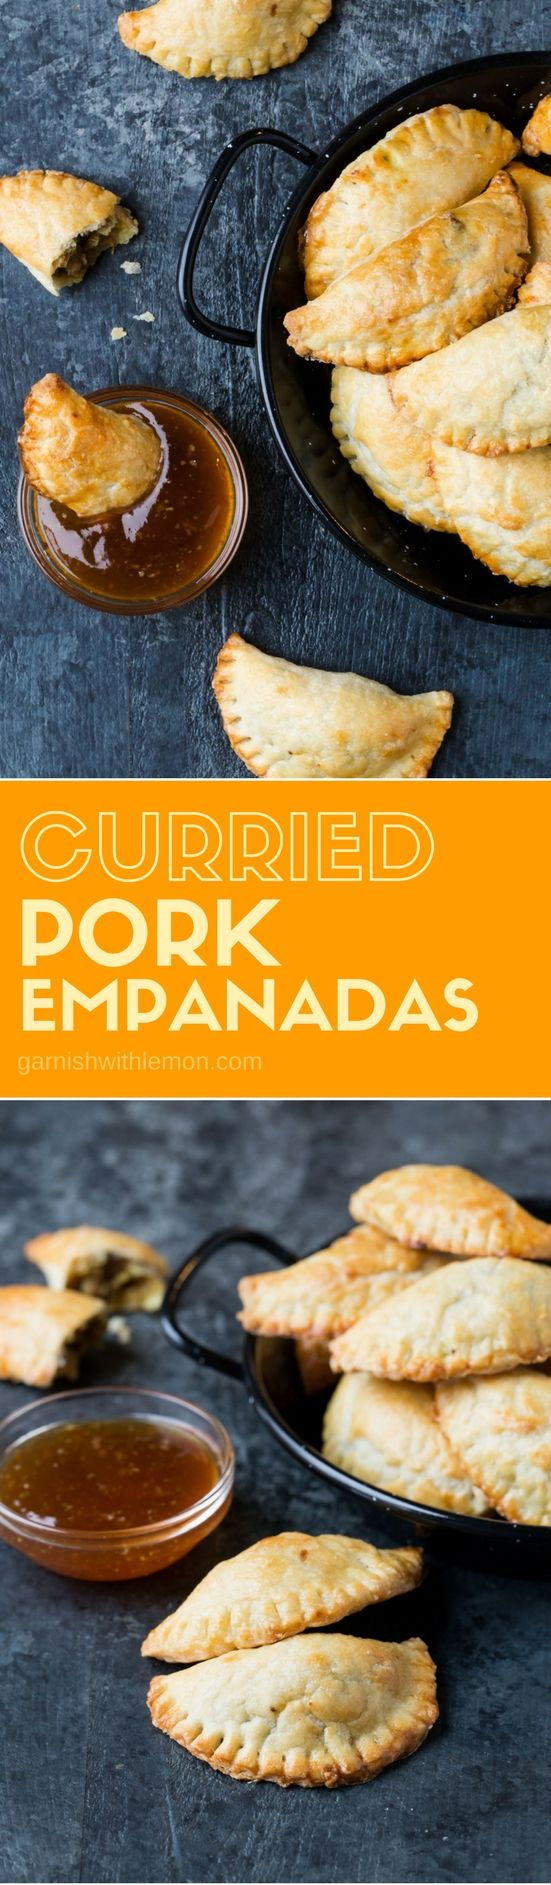 Add some flavor to your appetizer spread with this recipe for homemade Curried Pork Empanadas. Dunk them in a dipping sauce and watch them disappear!